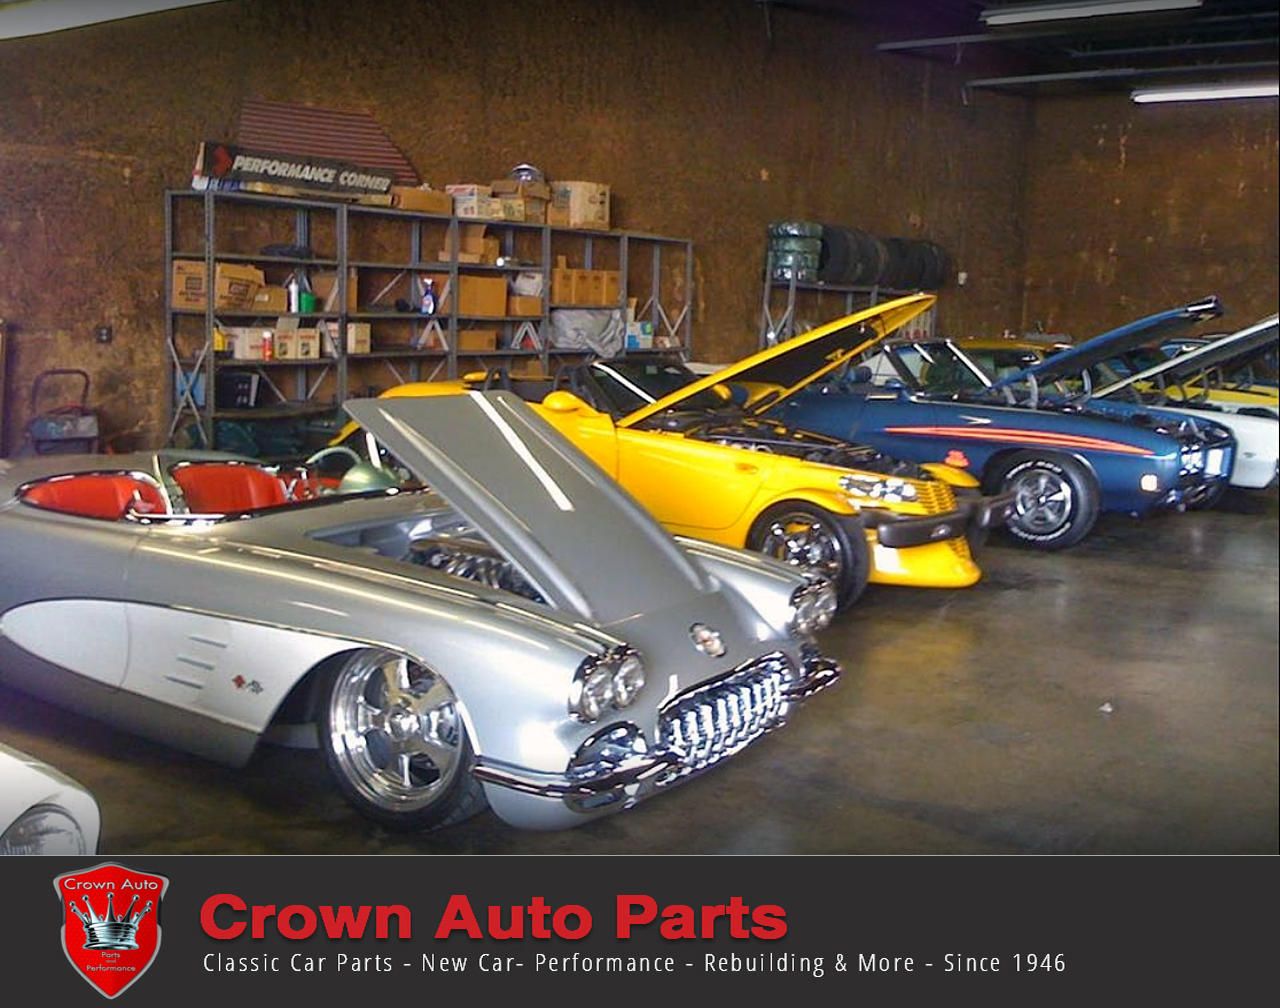 Crown Auto Parts & Rebuilding image 12